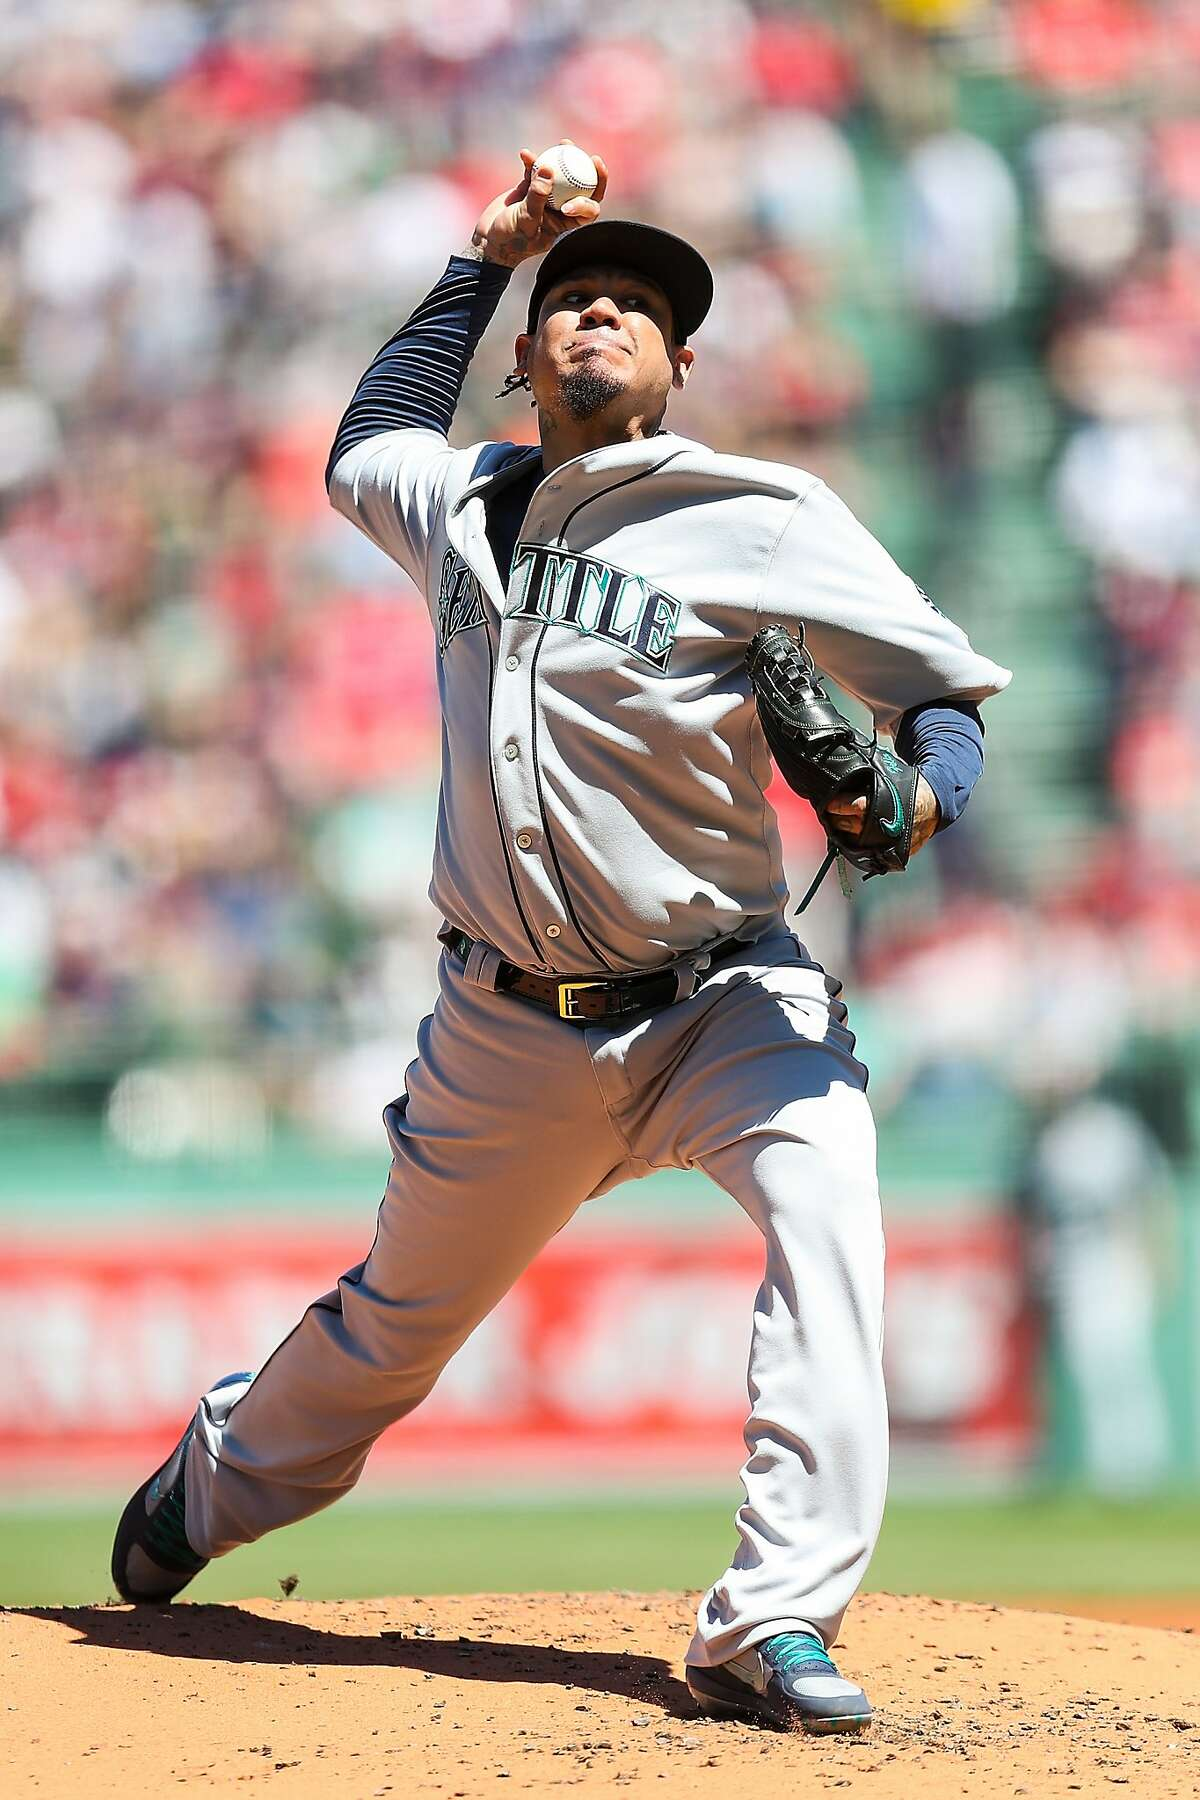 Bad: the pitching Seattle's rotation has a collective 4.75 ERA and given up 71 home runs. The 252 runs opponents have scored is the worst mark in baseball, and allowed teams to reach eight or more runs 10 times.